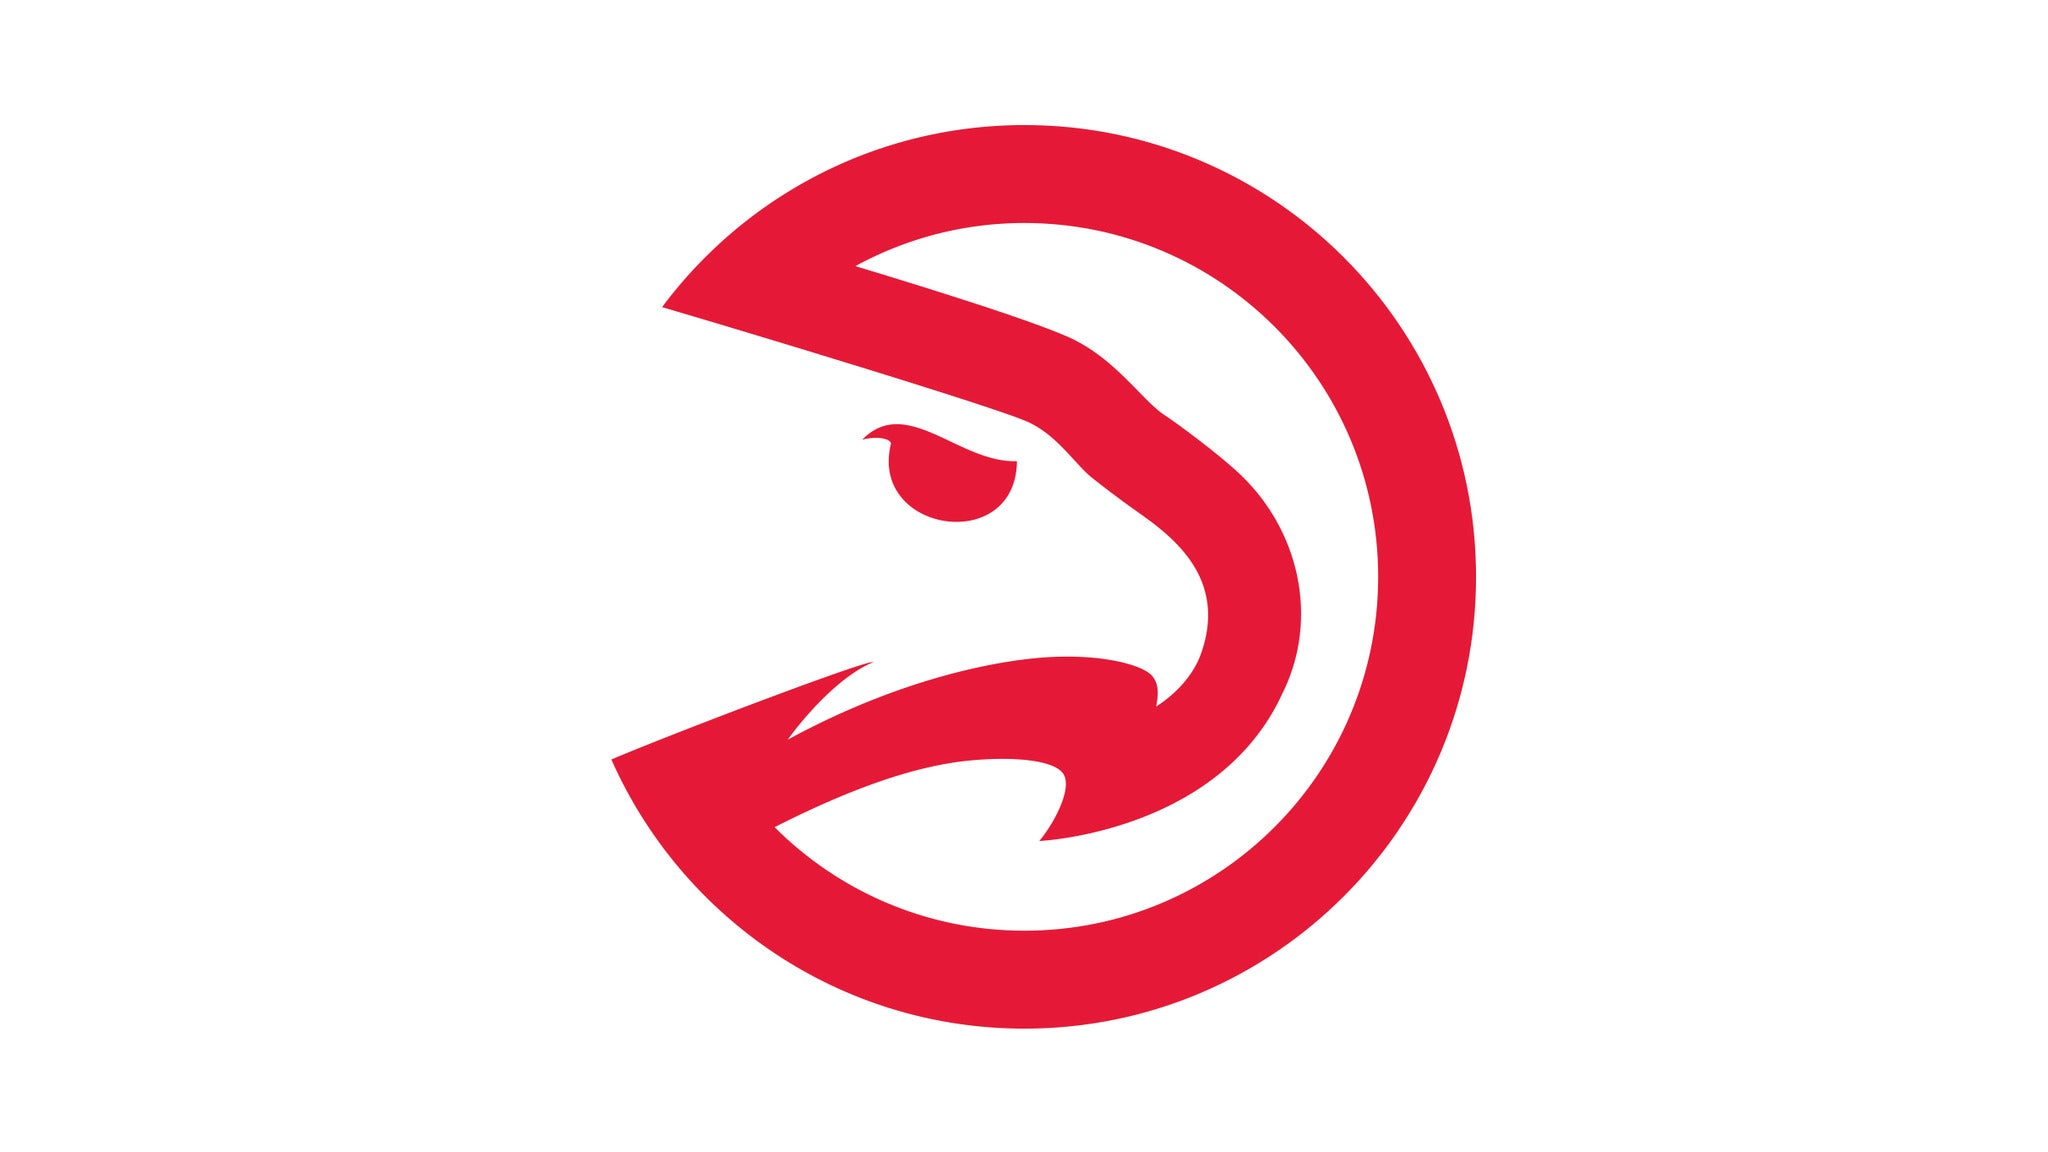 Atlanta Hawks vs. New Orleans Pelicans at Philips Arena